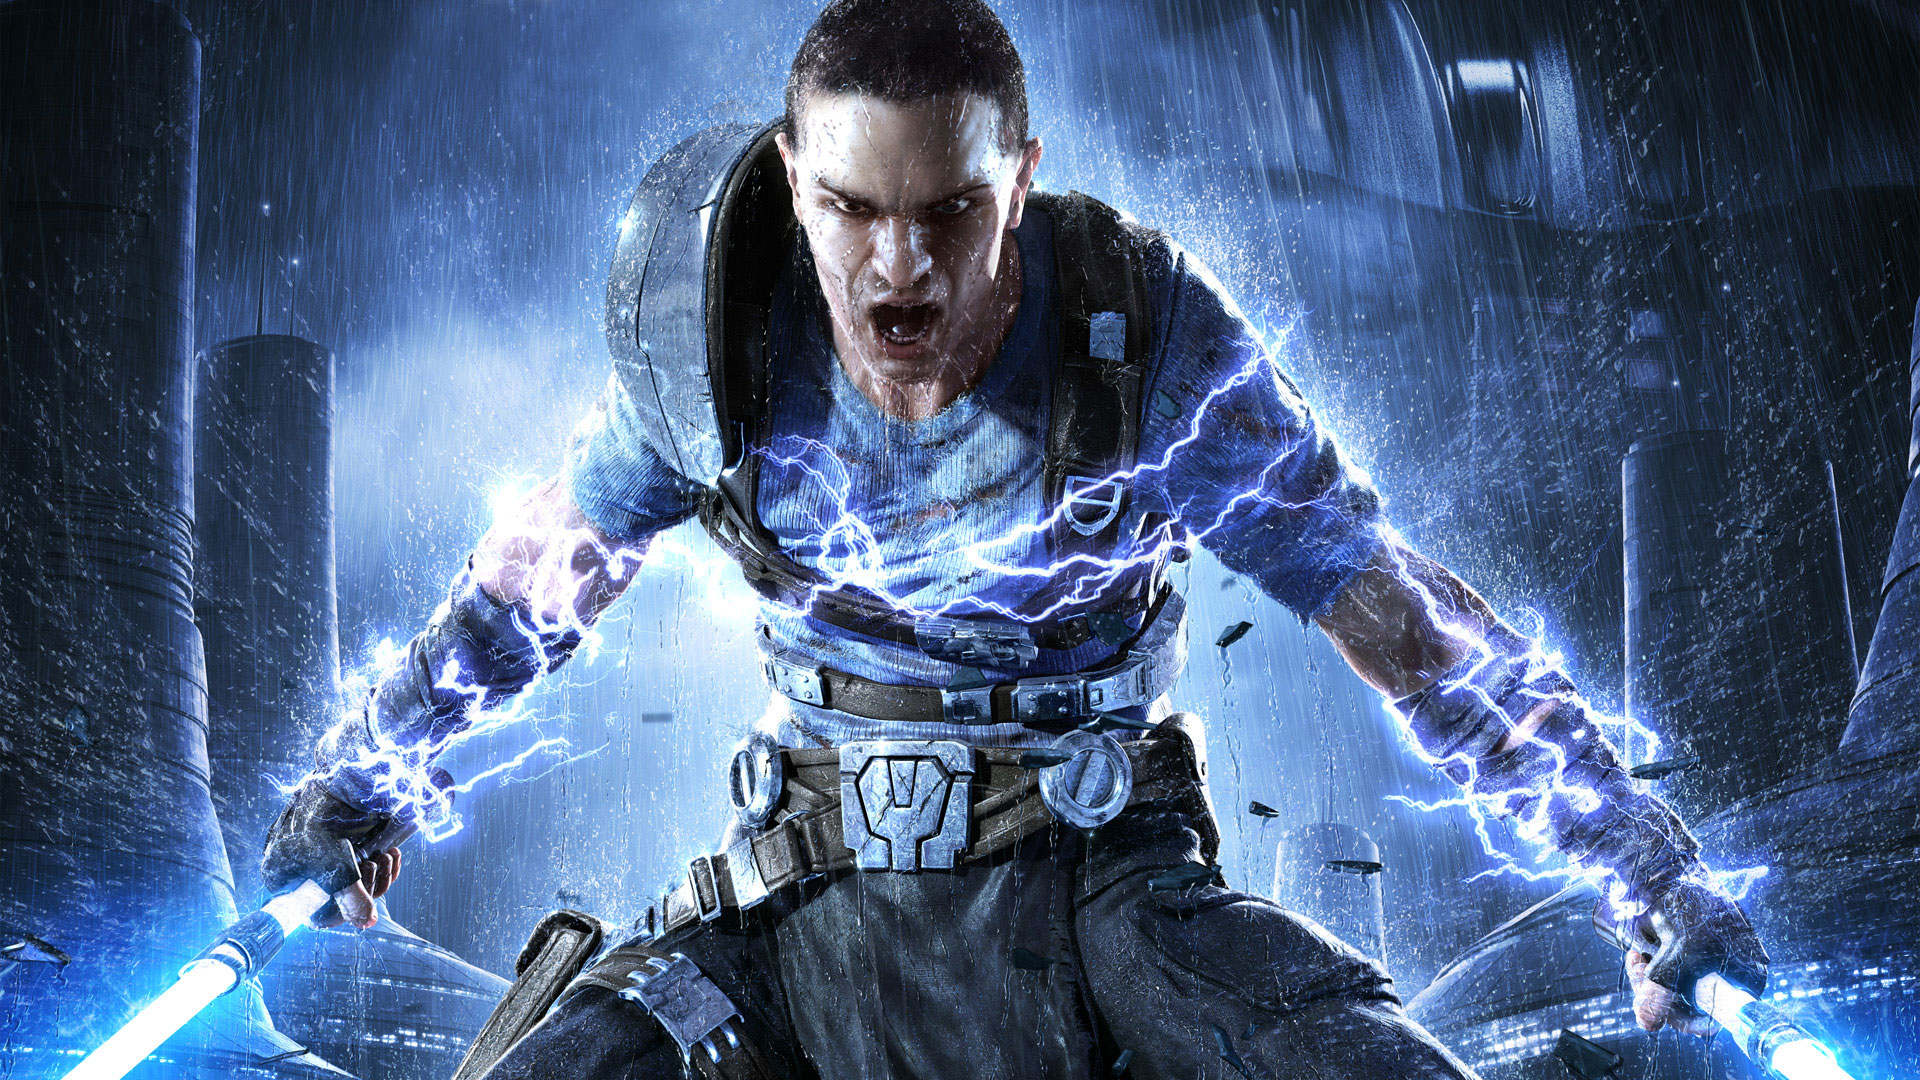 Star Wars The Force Unleashed 2 1080p Wallpaper 1920x1080